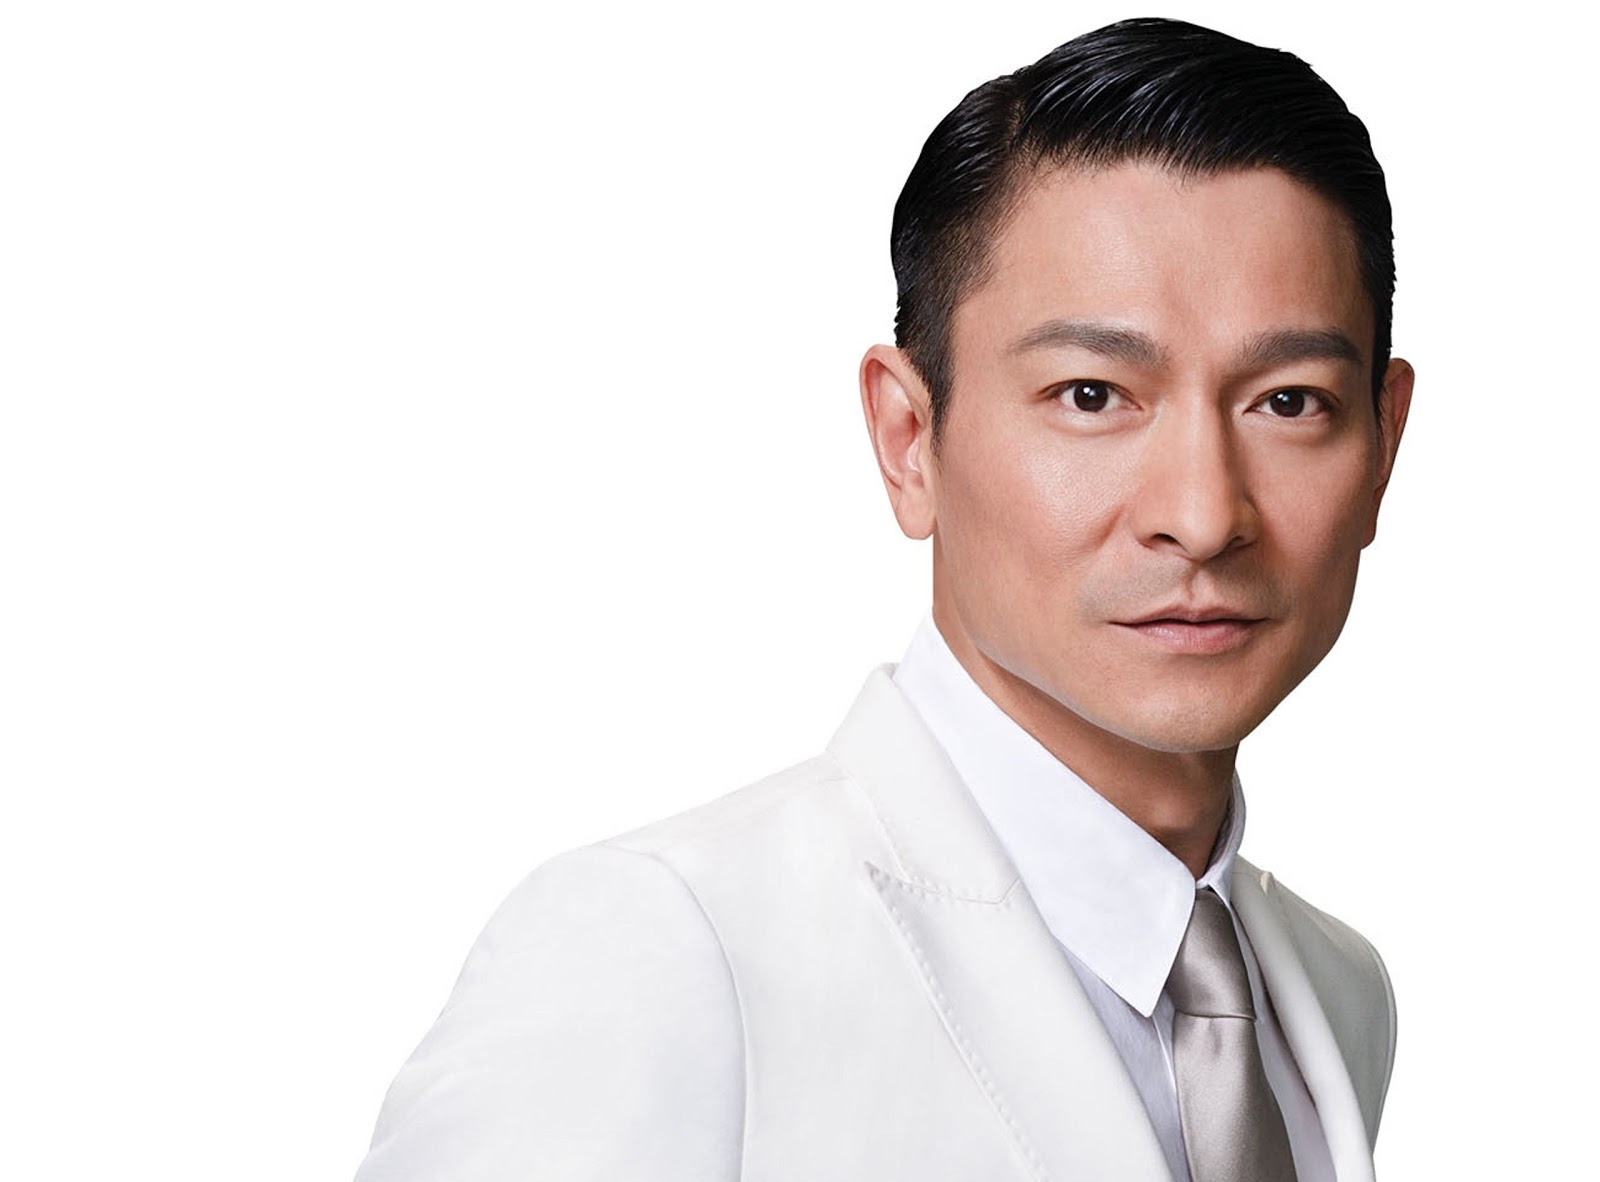 Quotes Wallpaper Free Download Andy Lau Hd Wallpapers High Definition Free Background